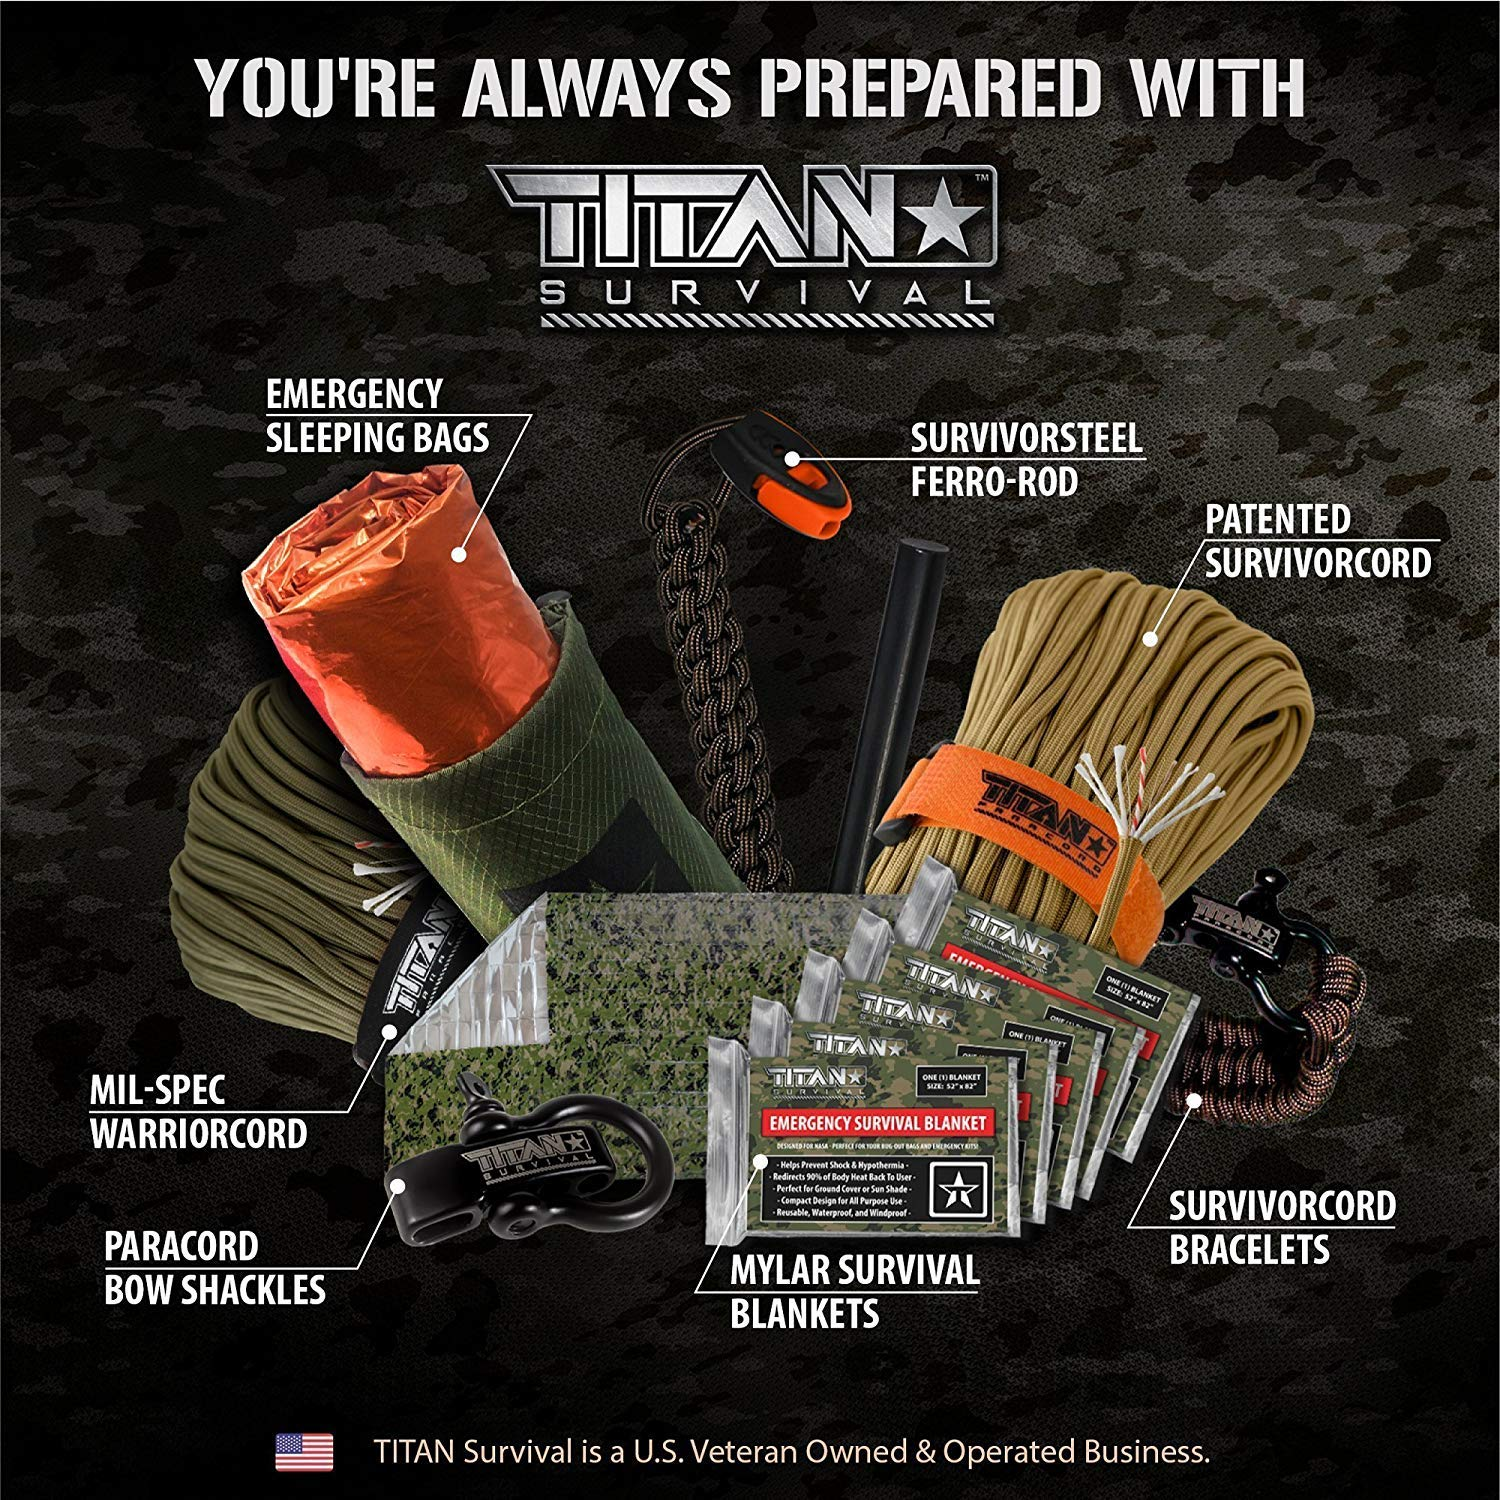 Titan SurvivorCord | Desert TAN | 103 Feet | Patented Military Type III 550 Paracord/Parachute Cord (3/16'' Diameter) with Integrated Fishing Line, Fire-Starter, and Utility Wire. by Titan Paracord (Image #8)